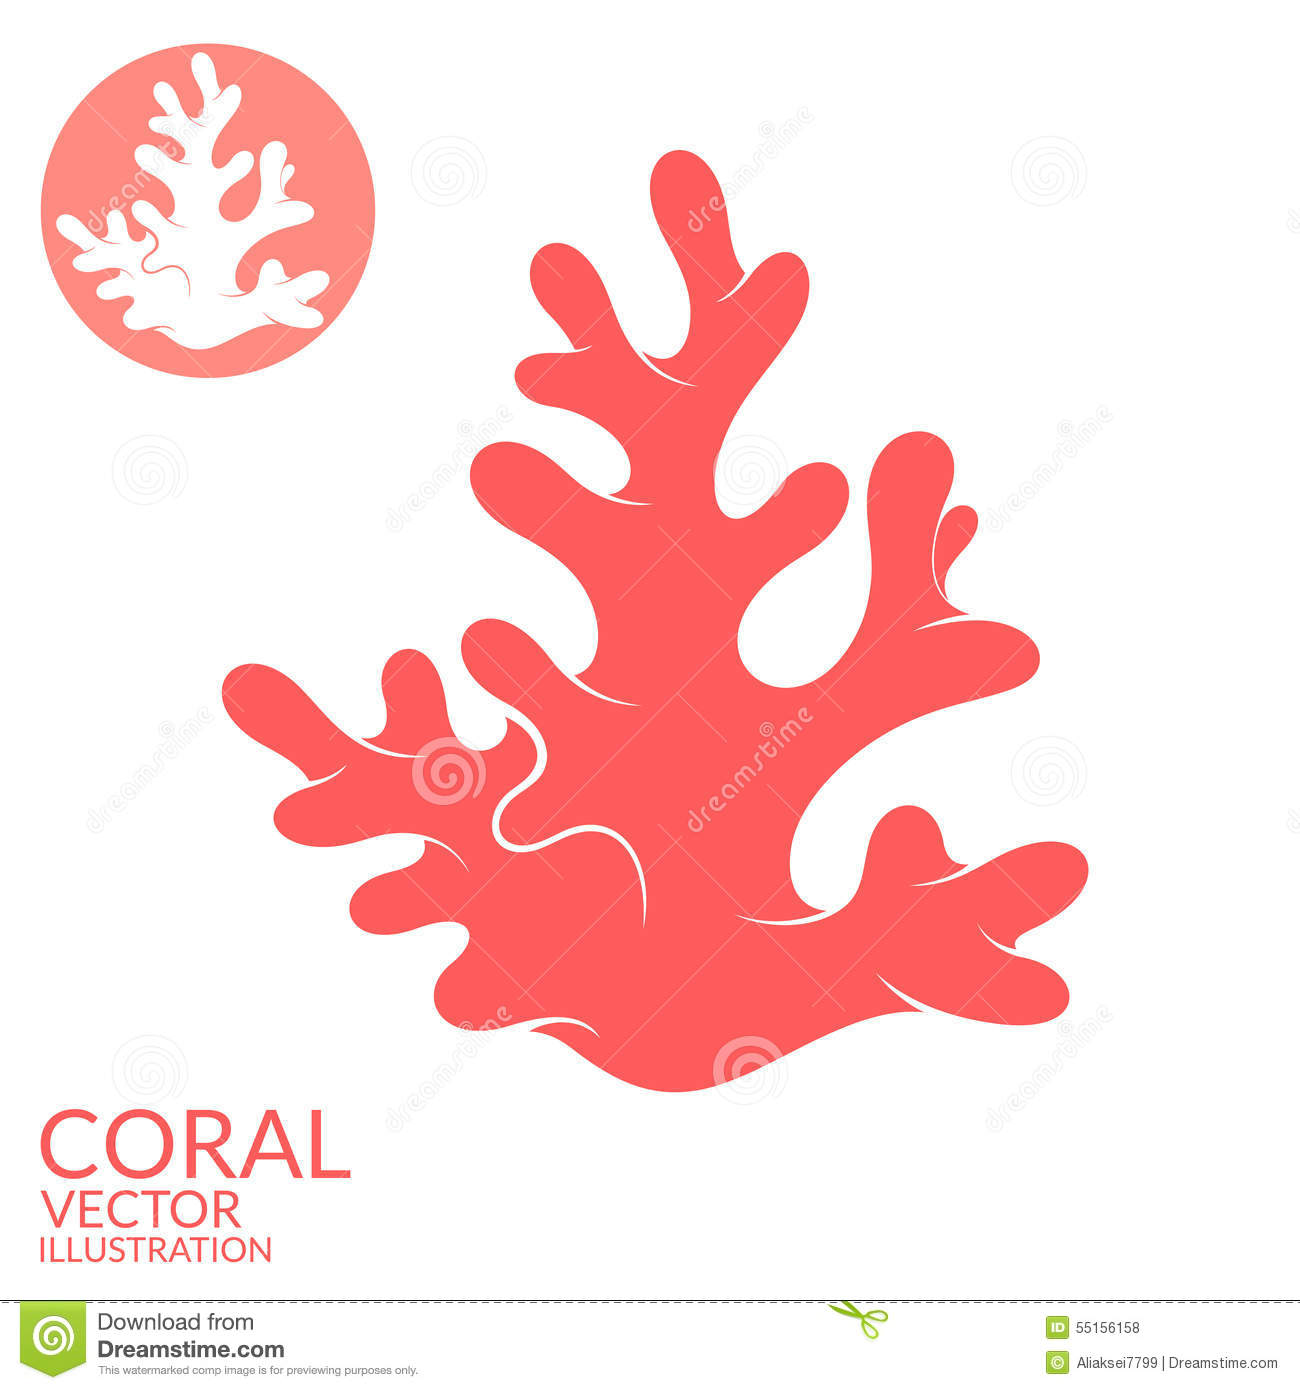 Coral Stock Vector - Image: 55156158